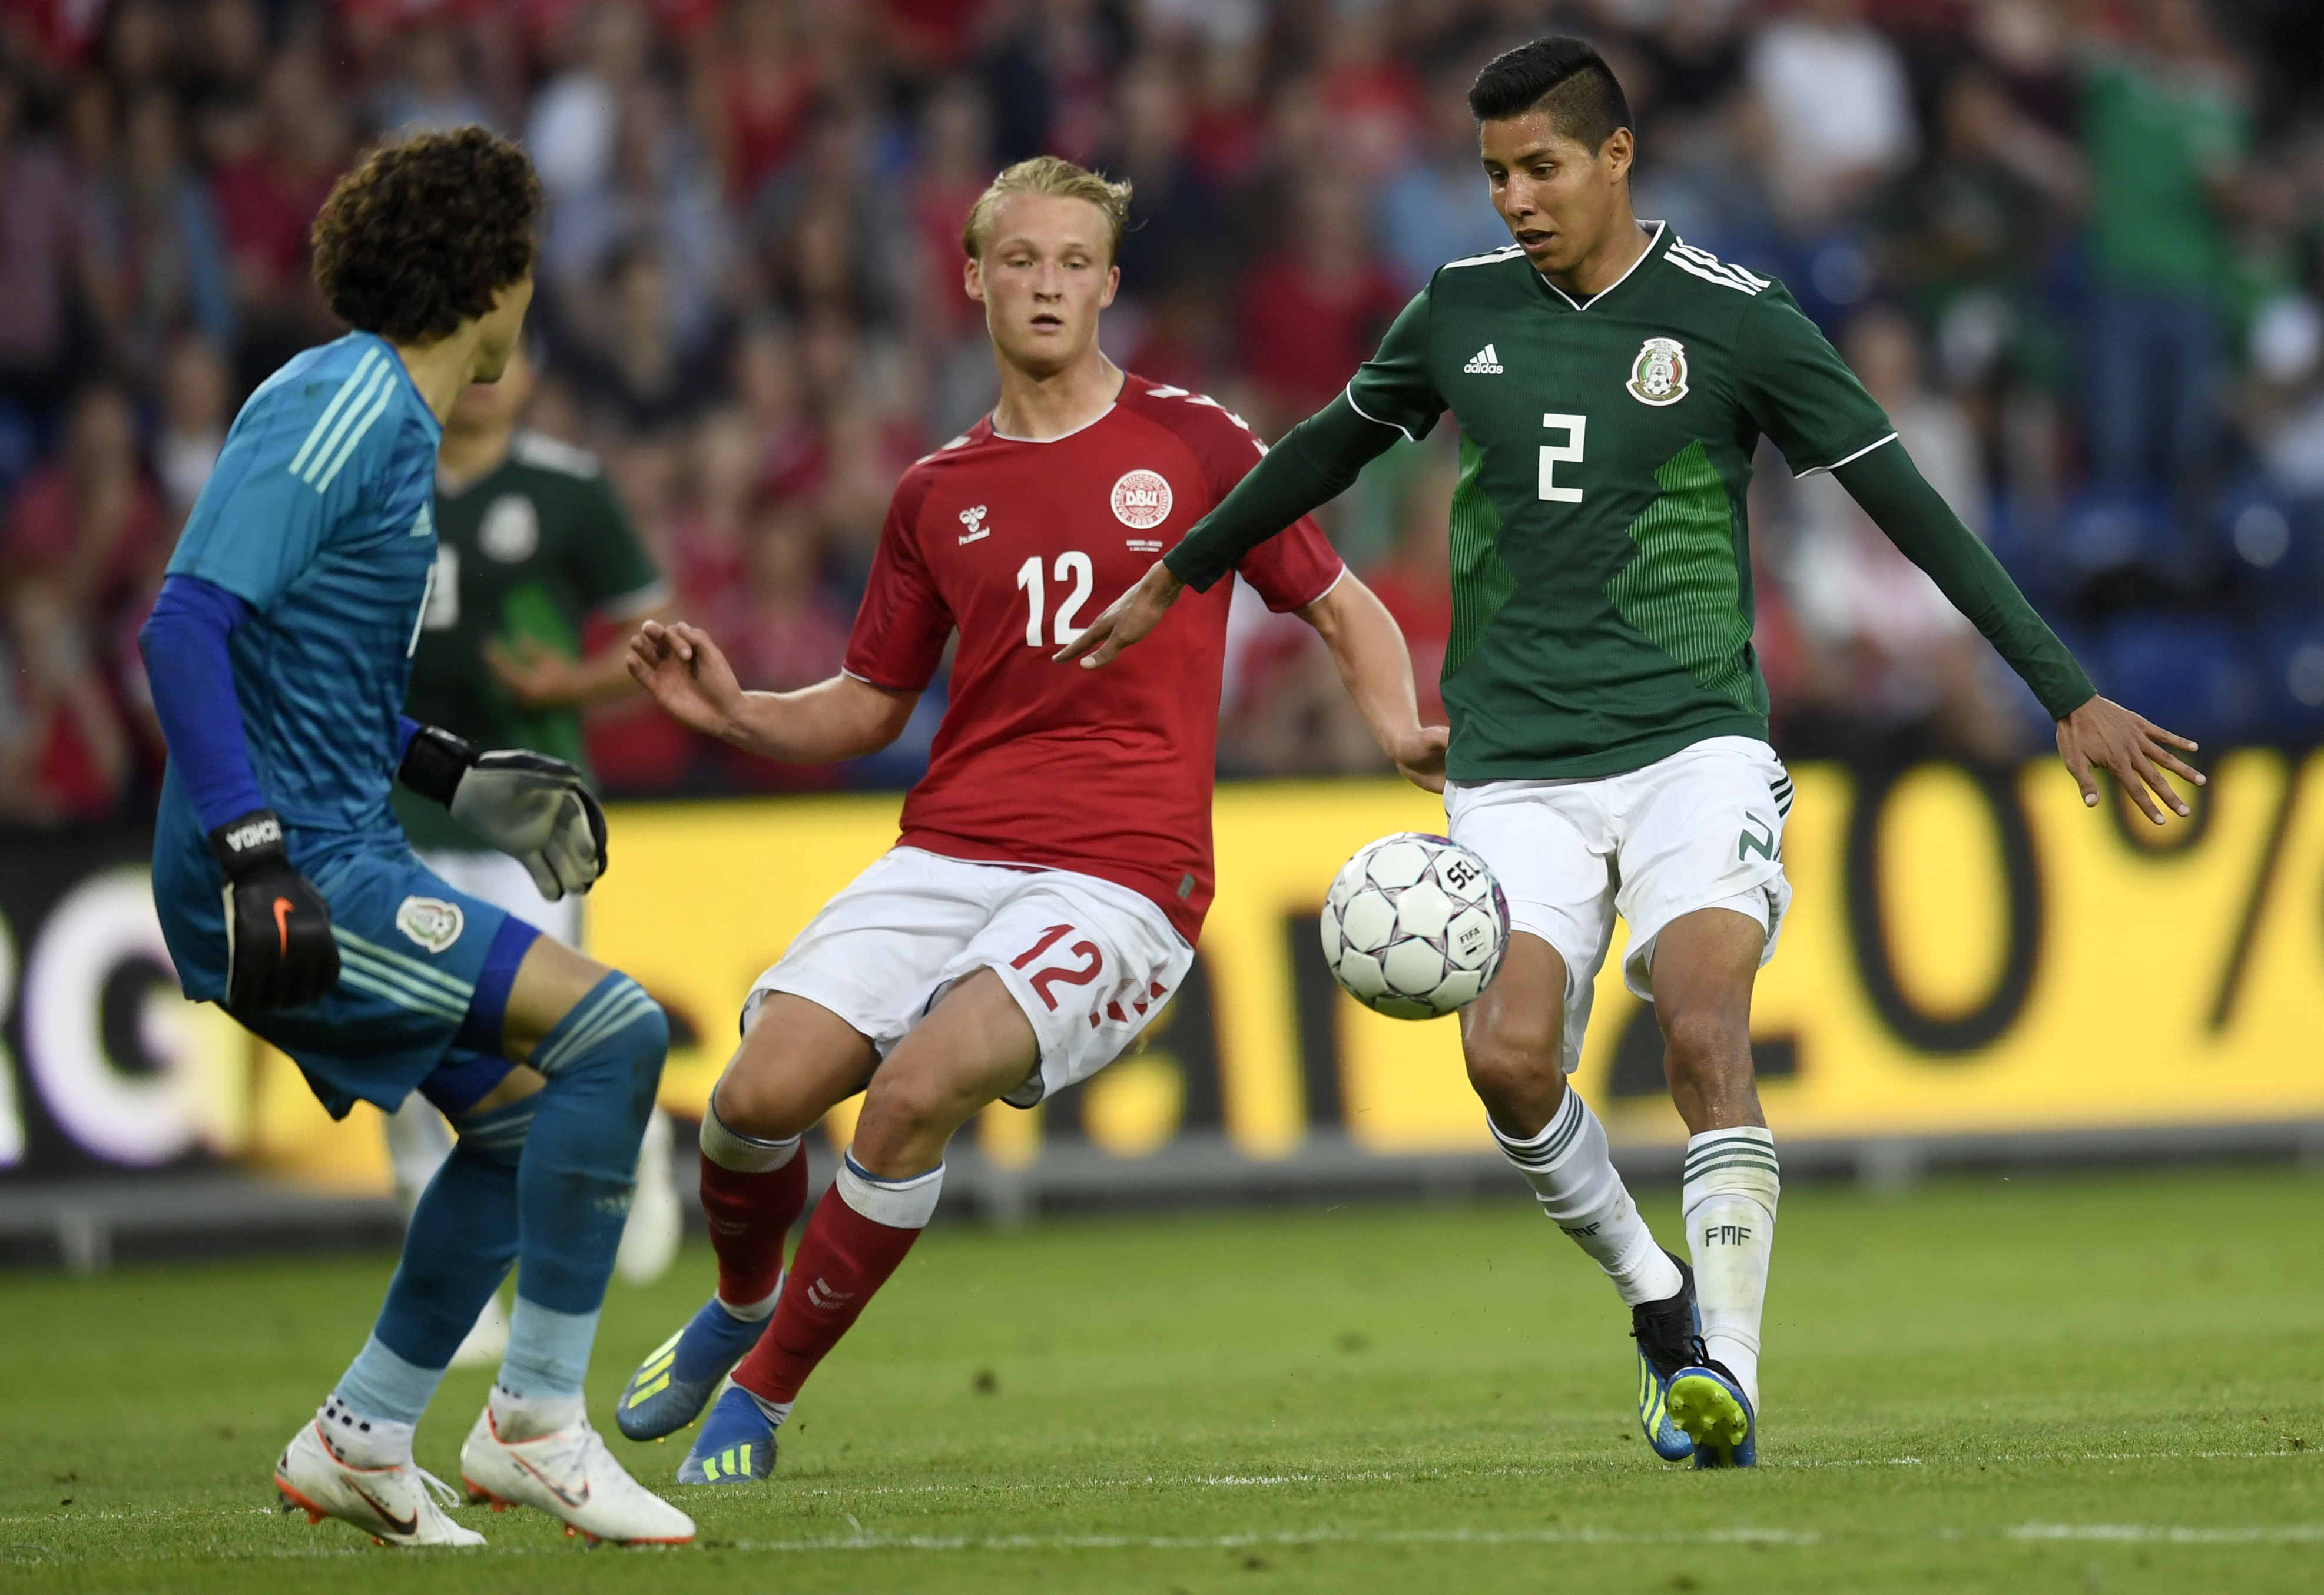 A football match between Denmark and Mexico